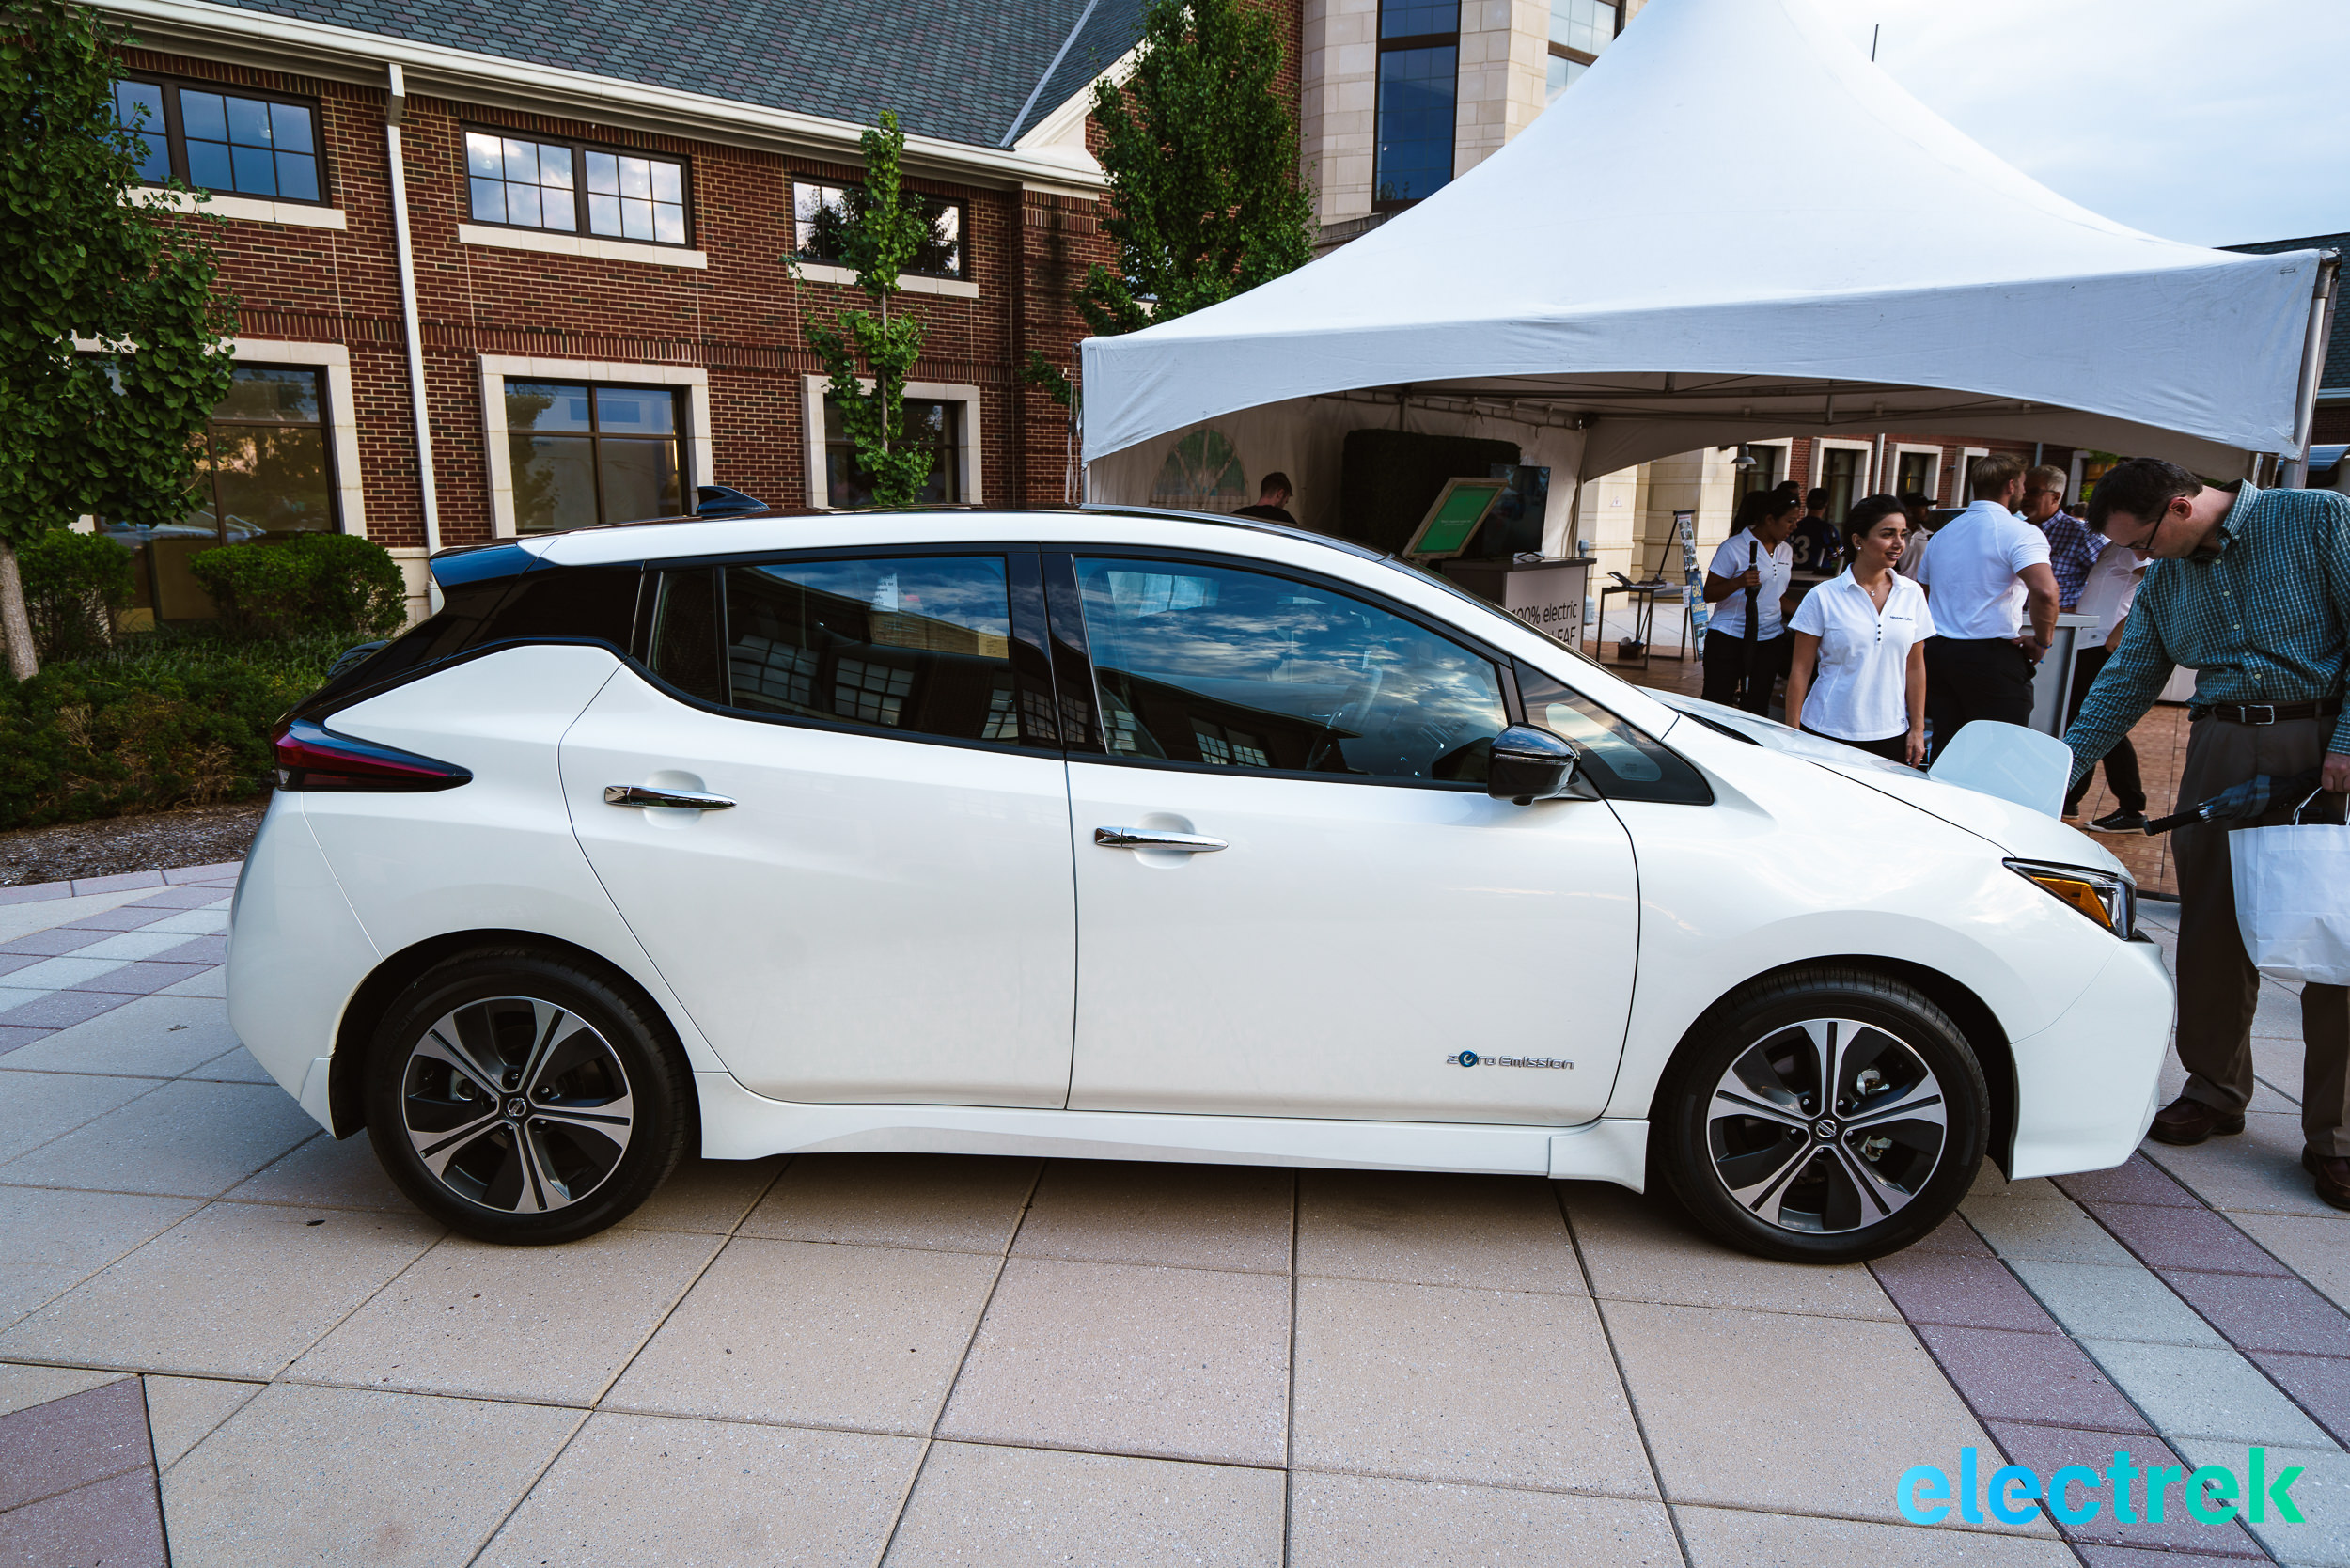 14 New Nissan Leaf 2018 sideview wheels rims profile design National